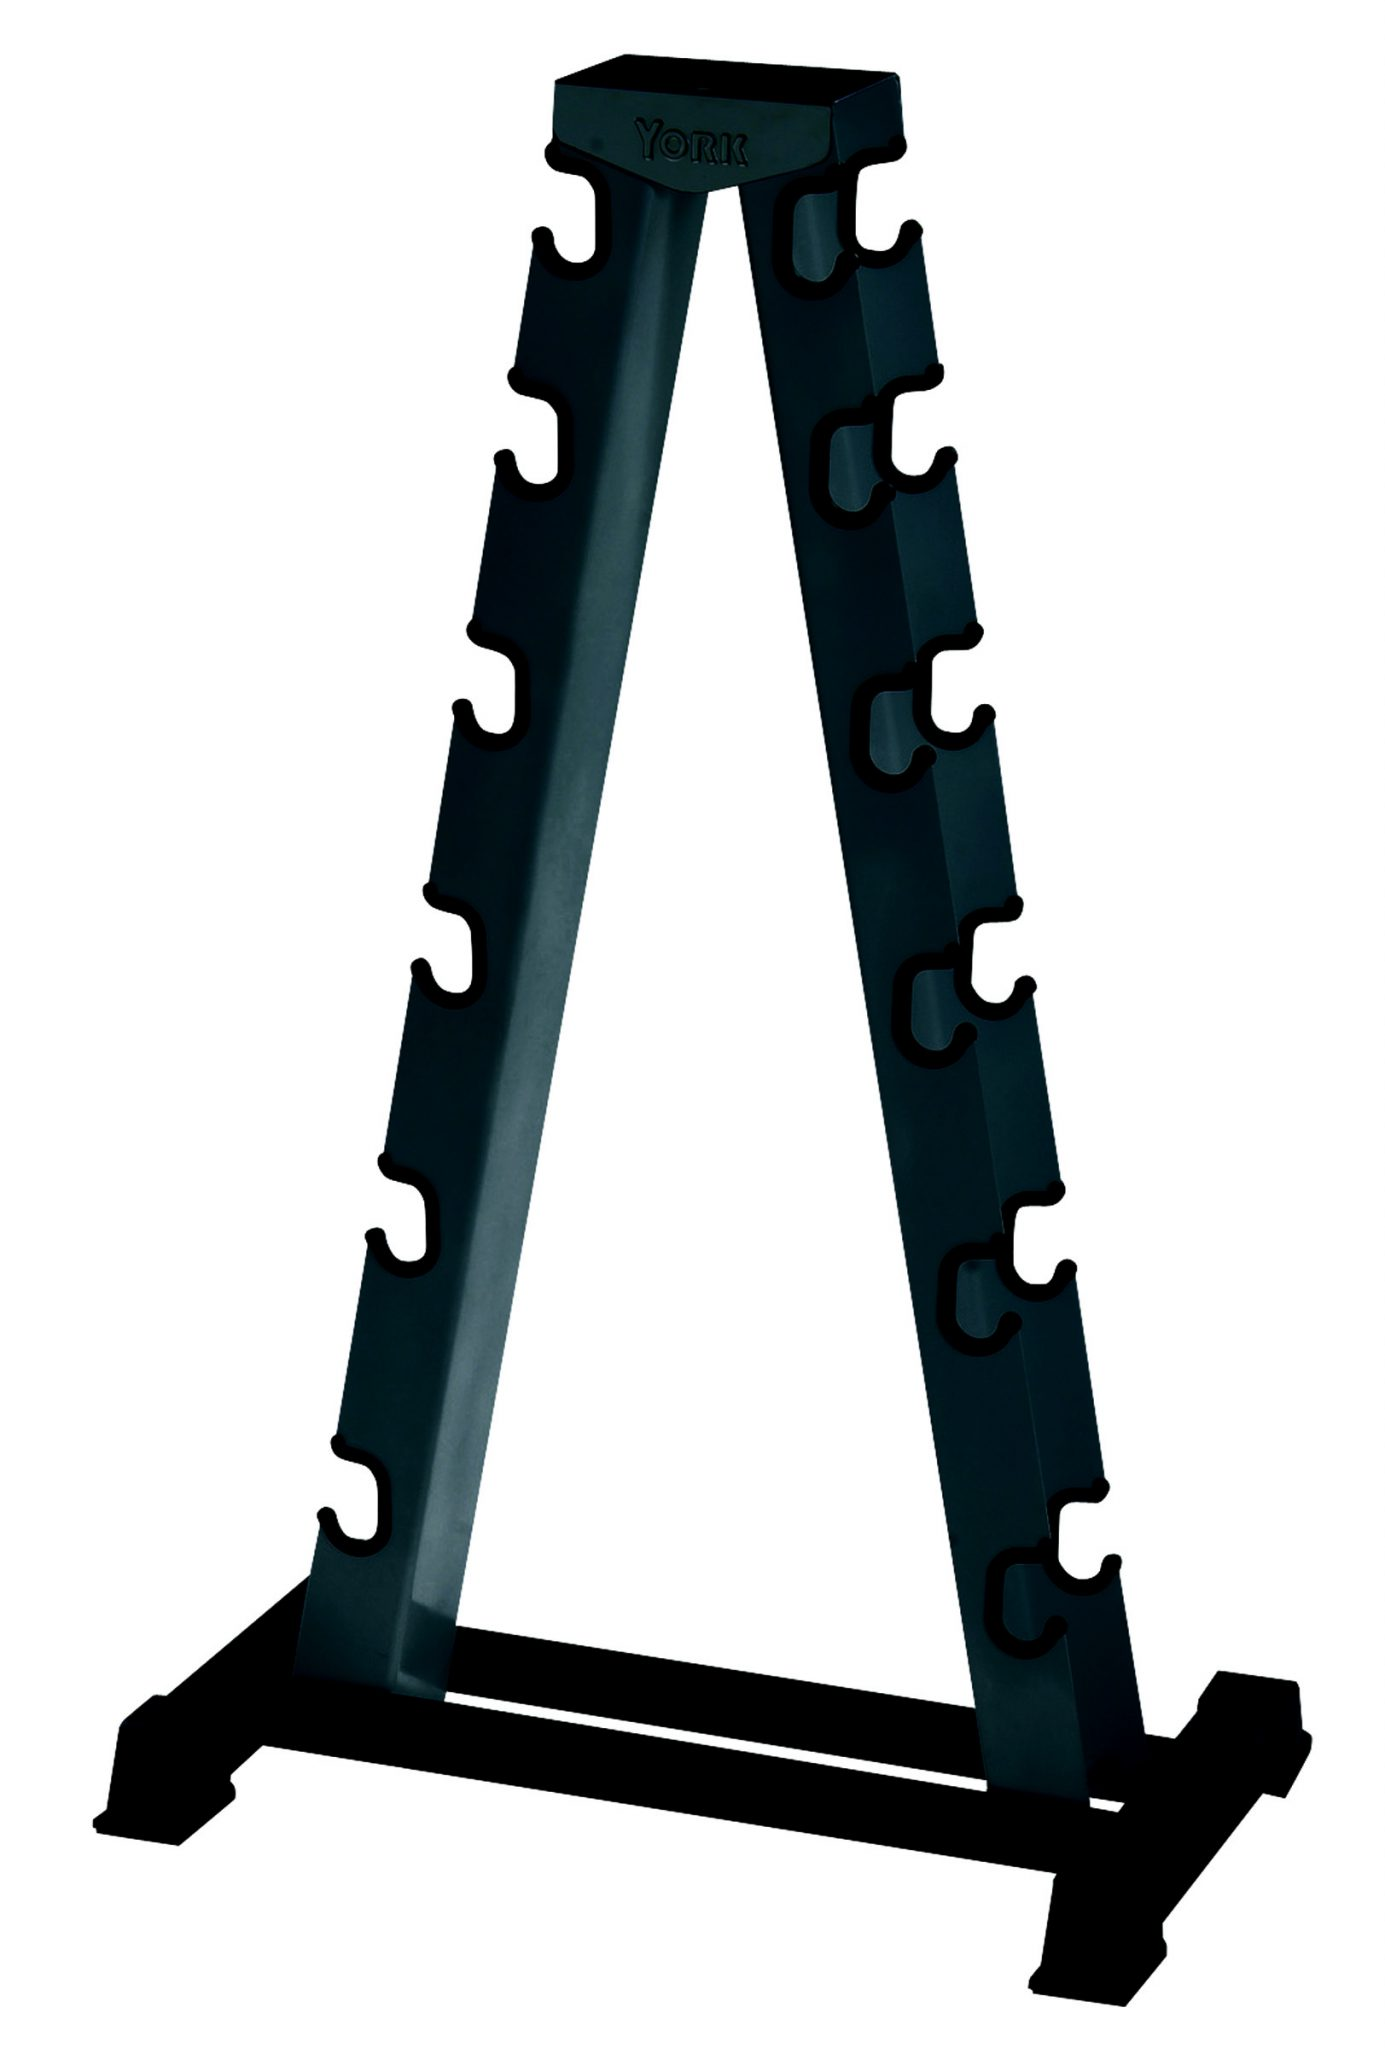 2 Sided A-Frame Dumbbell Rack